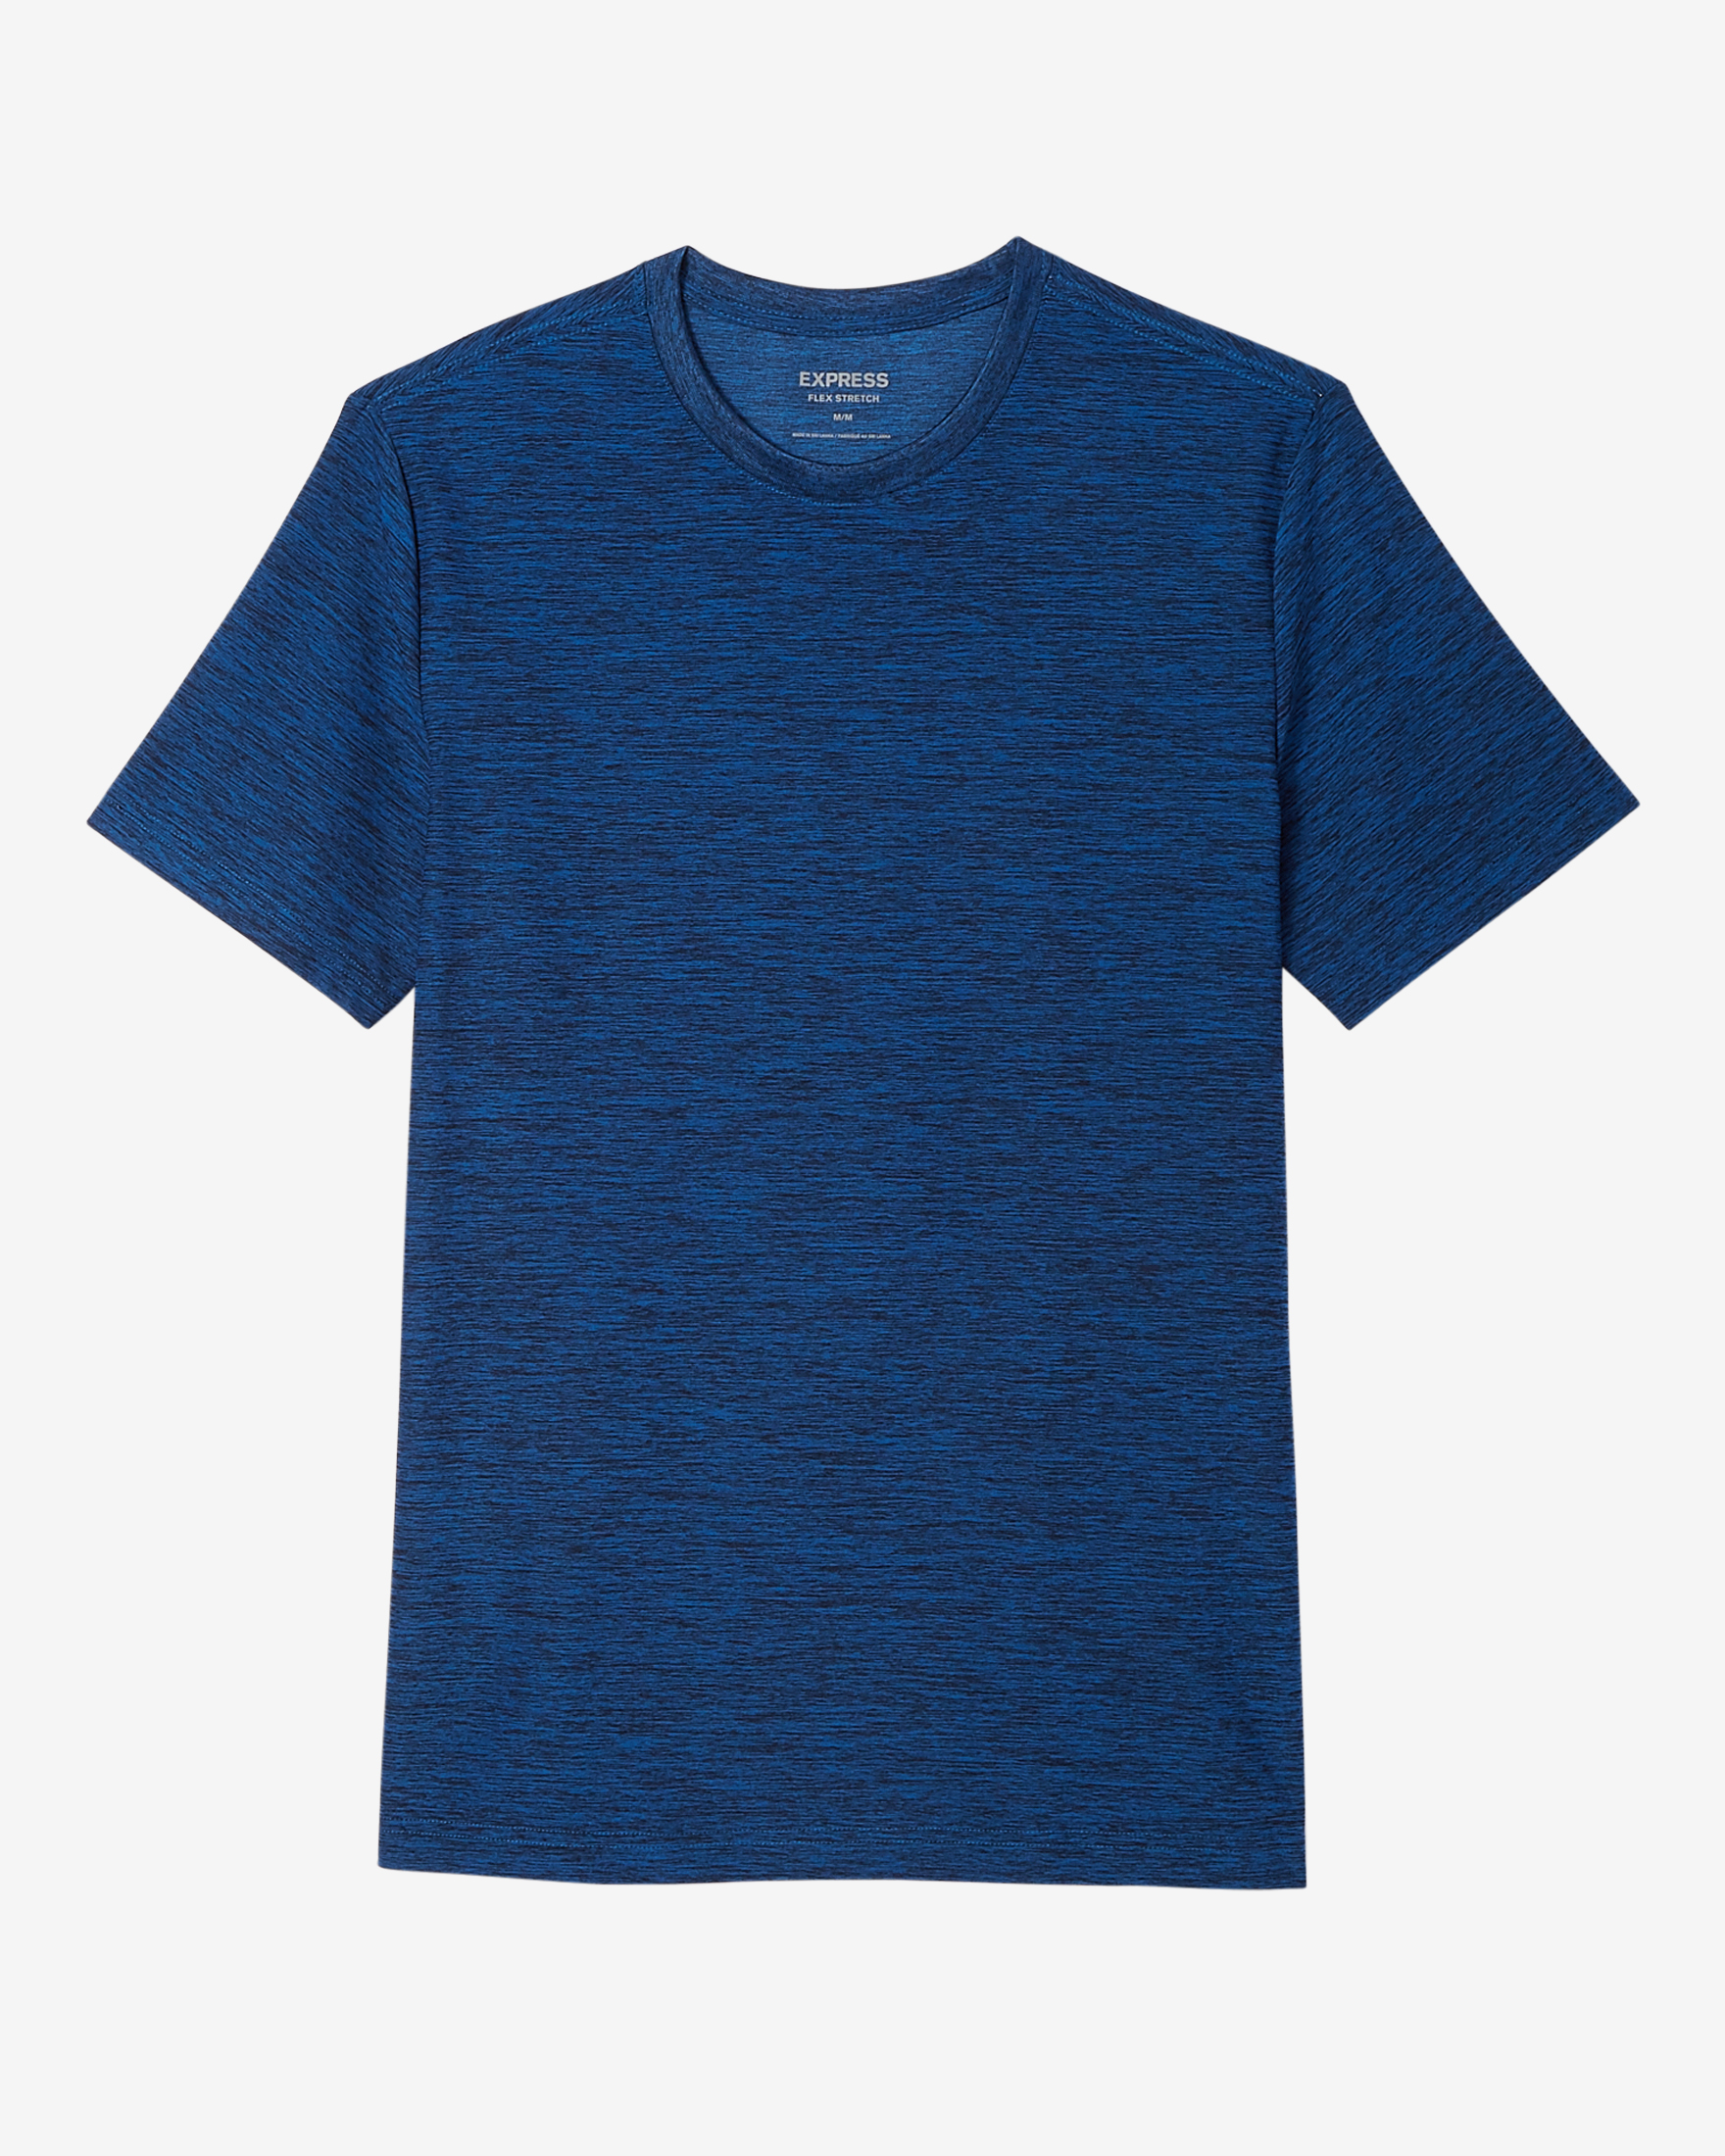 moisture-wicking-performance-crew-neck-tee